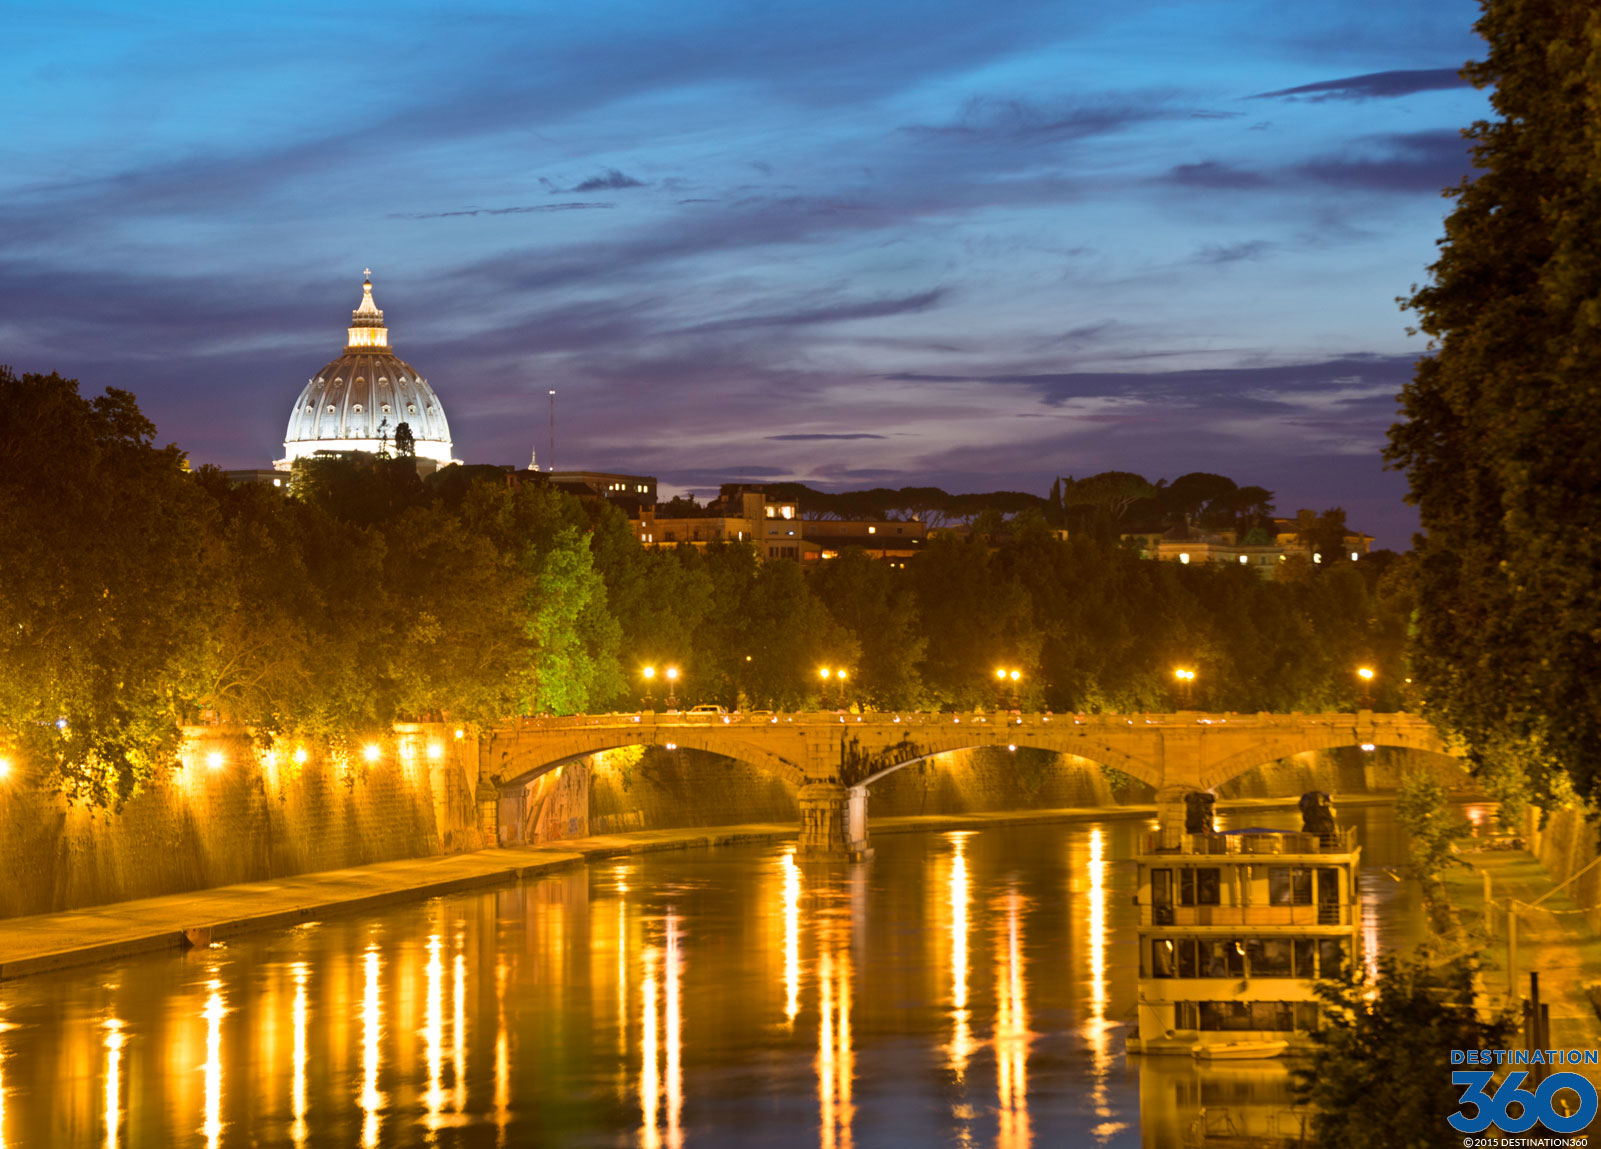 Tiber River Tiber River Facts History Of The Tiber River